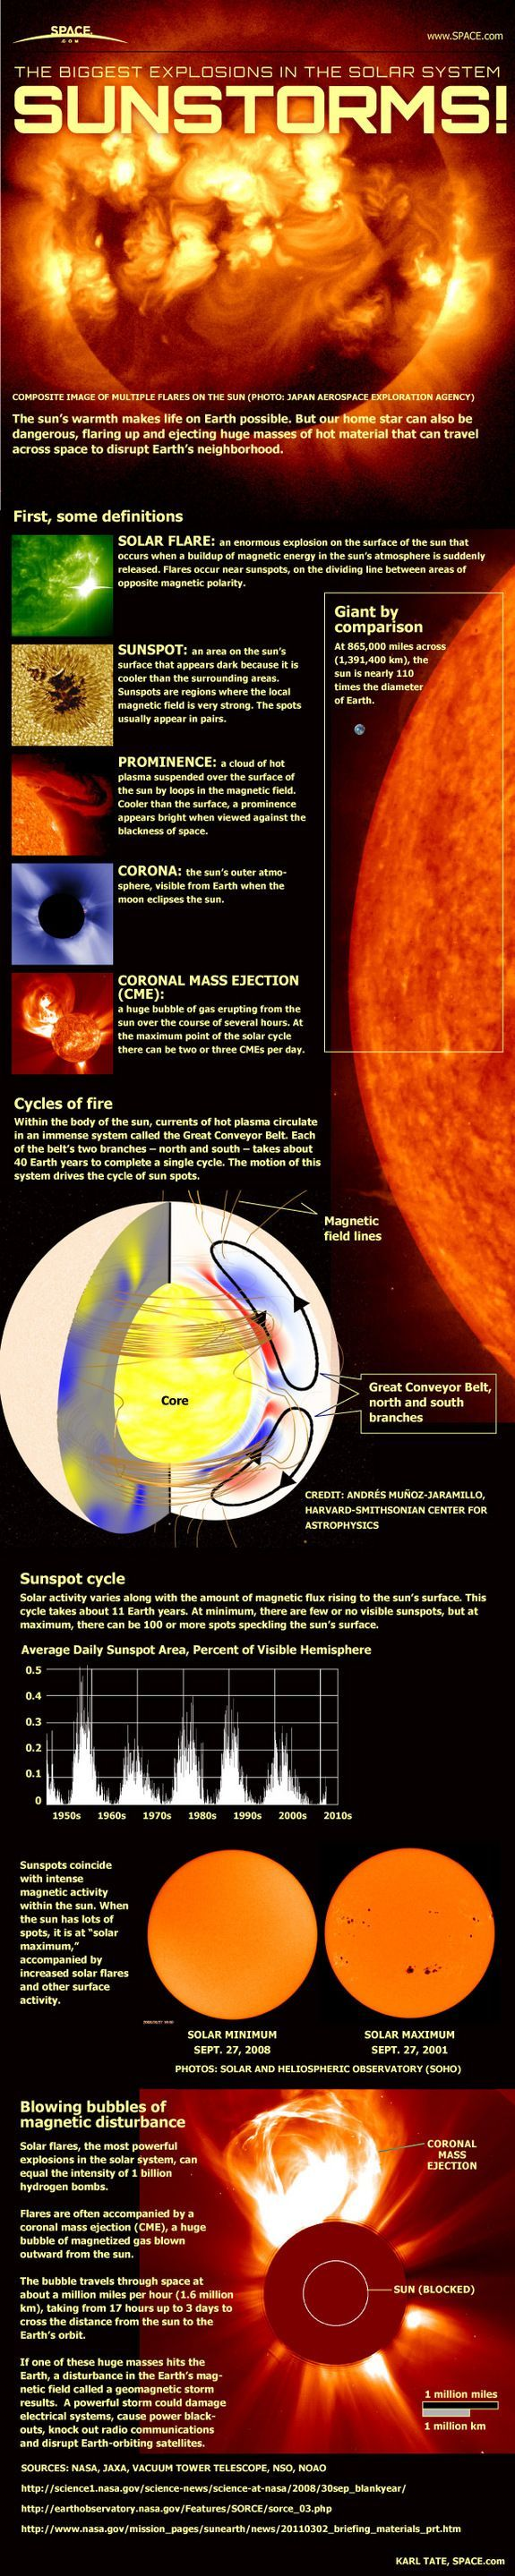 Information on solar storms and flares | Get started doomsday prepping and building your prepper supplies cache. | http://survivallife.com/2014/06/12/friday-the-13th-massive-solar-flare/